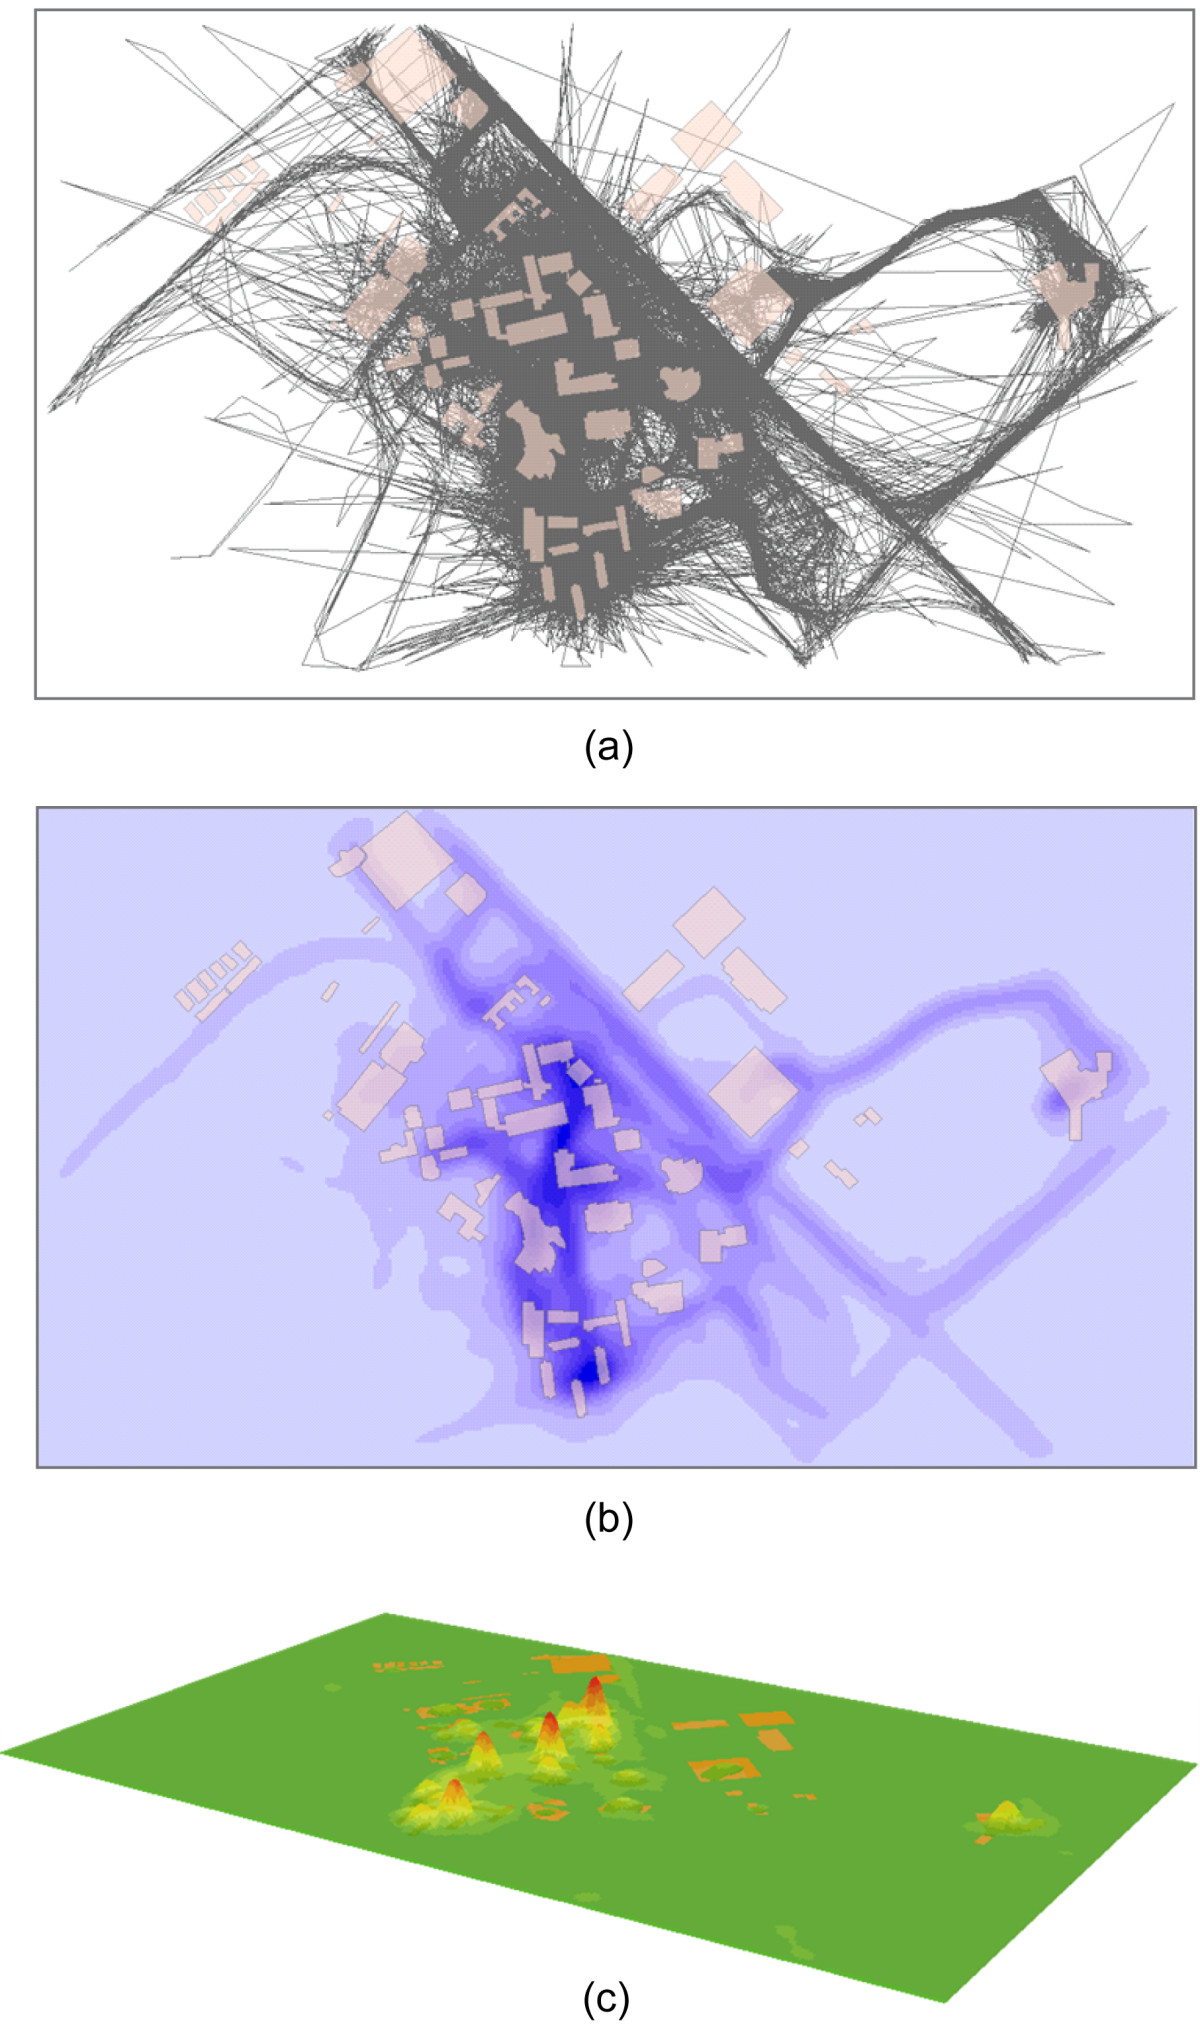 https://static-content.springer.com/image/art%3A10.1186%2F1476-072X-12-6/MediaObjects/12942_2012_Article_523_Fig5_HTML.jpg